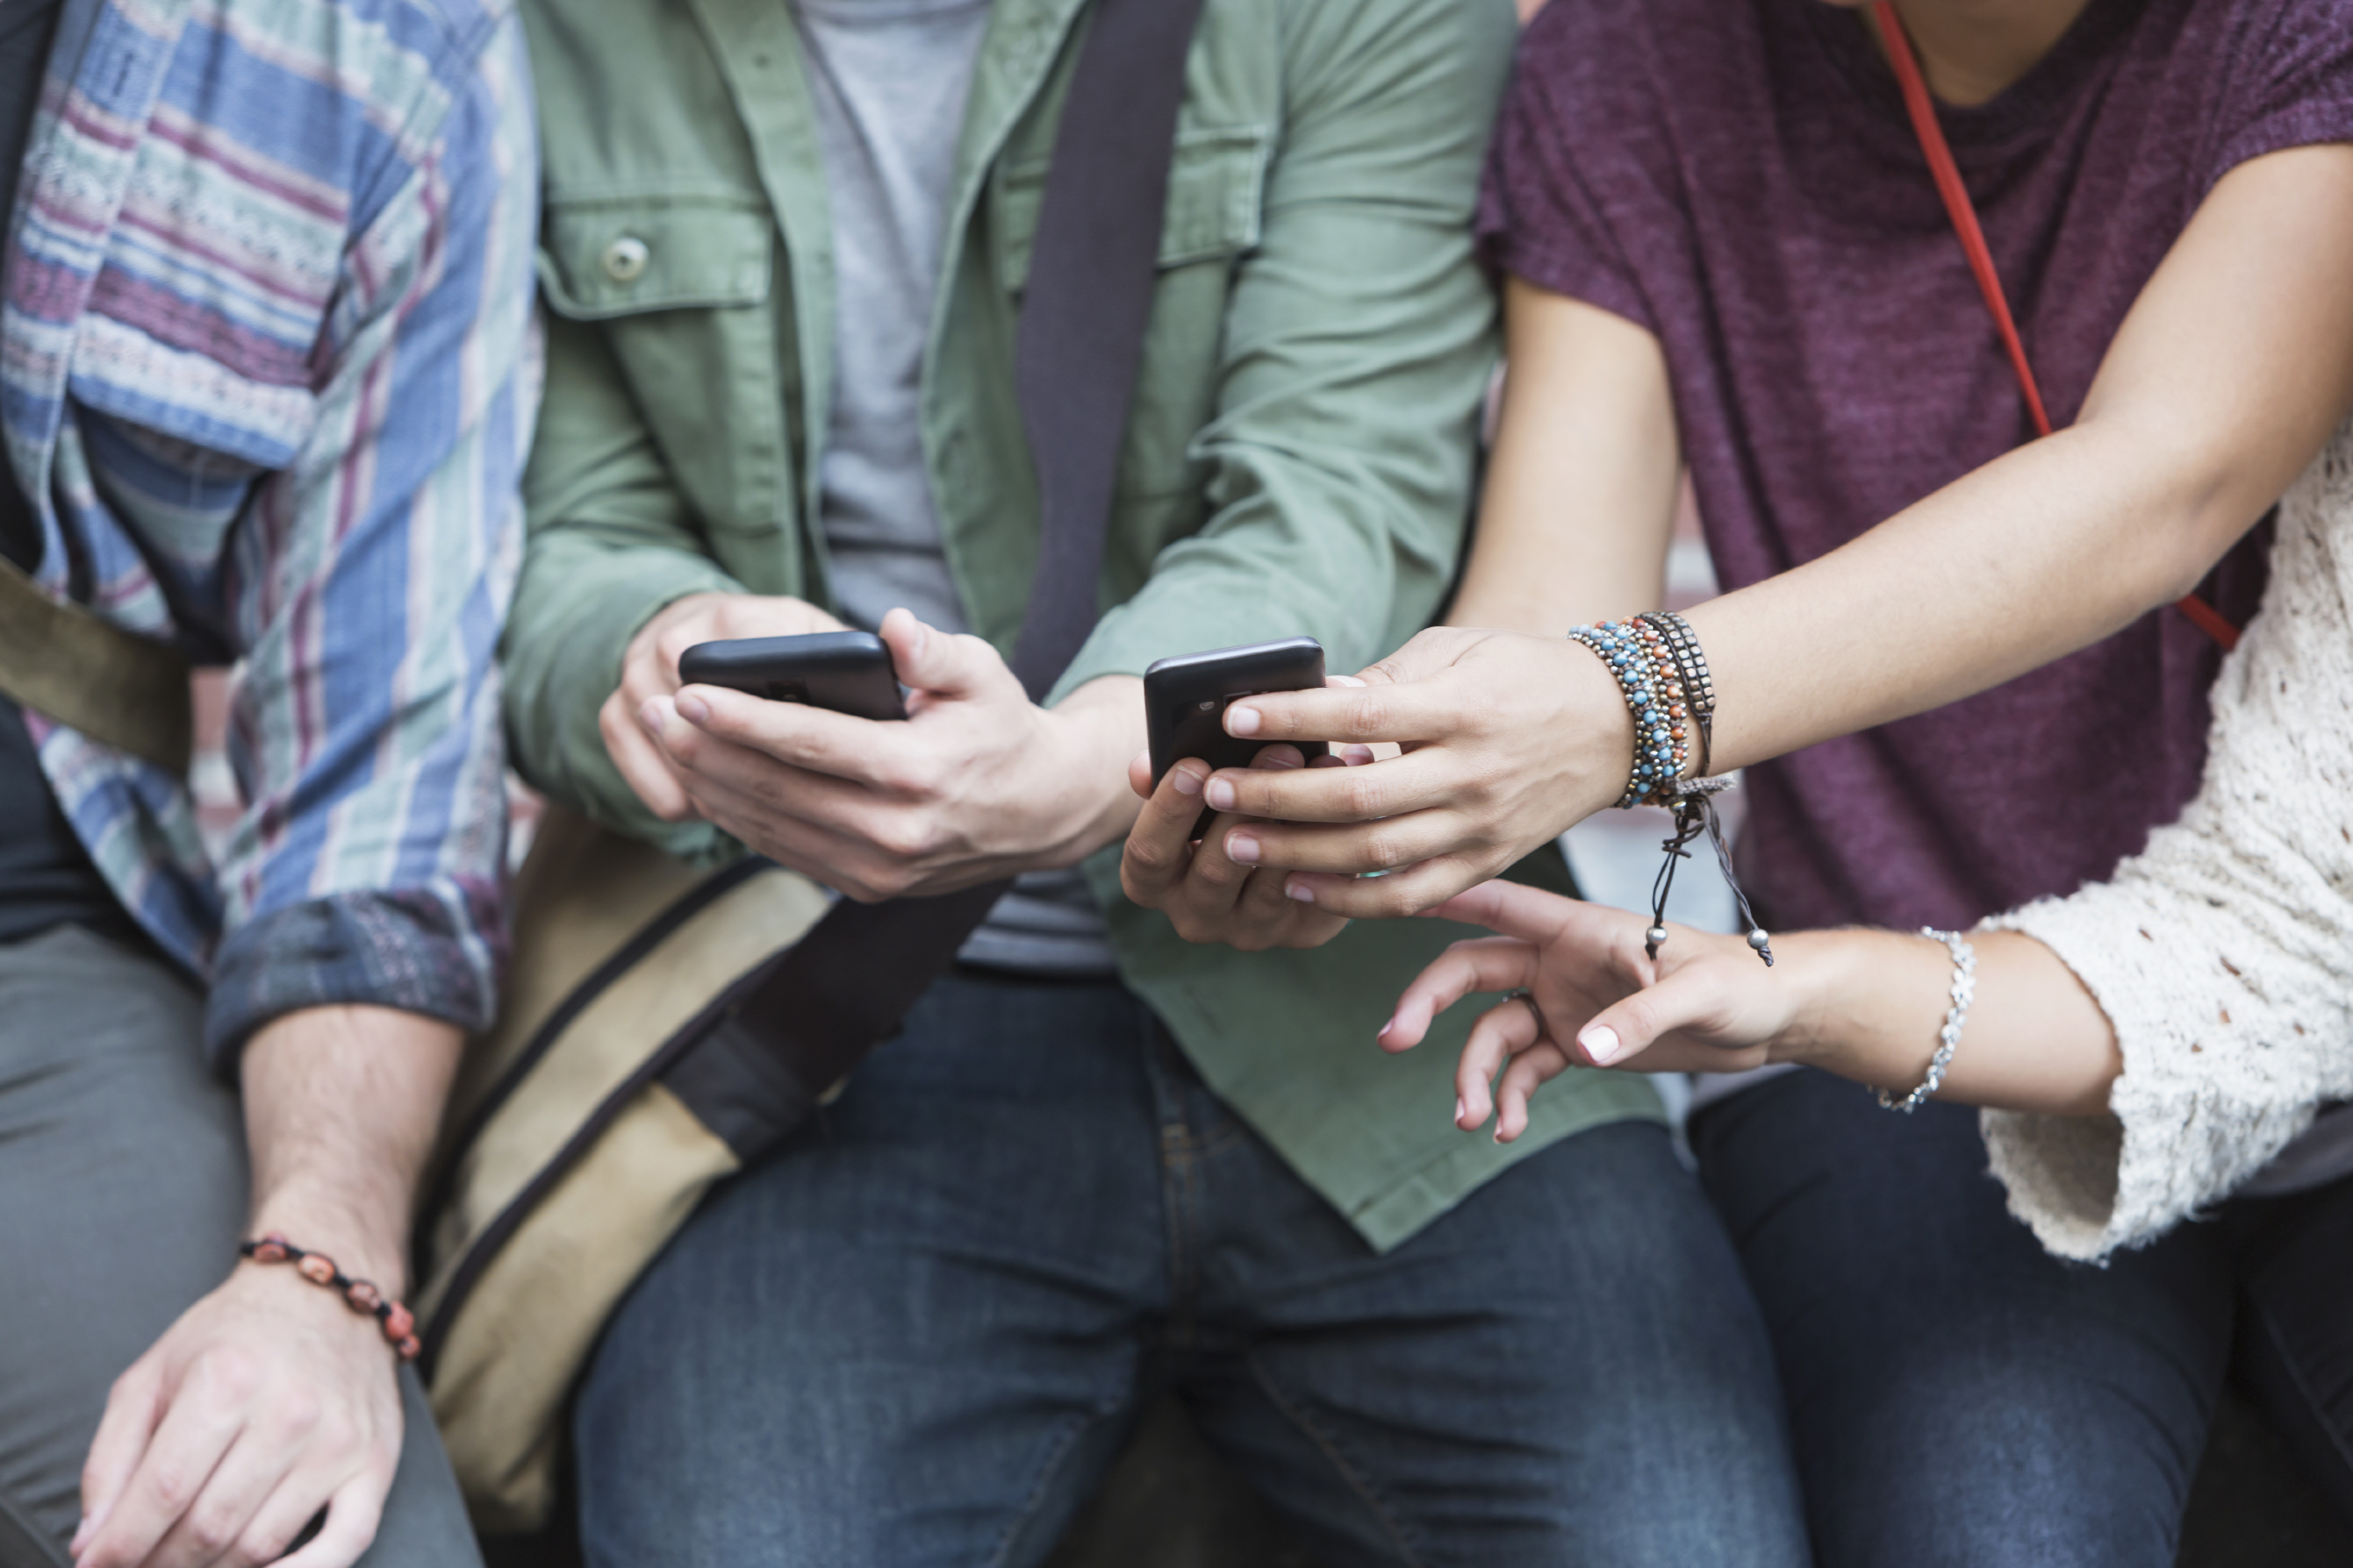 Hands-of-young-adults-with-mobile-phones